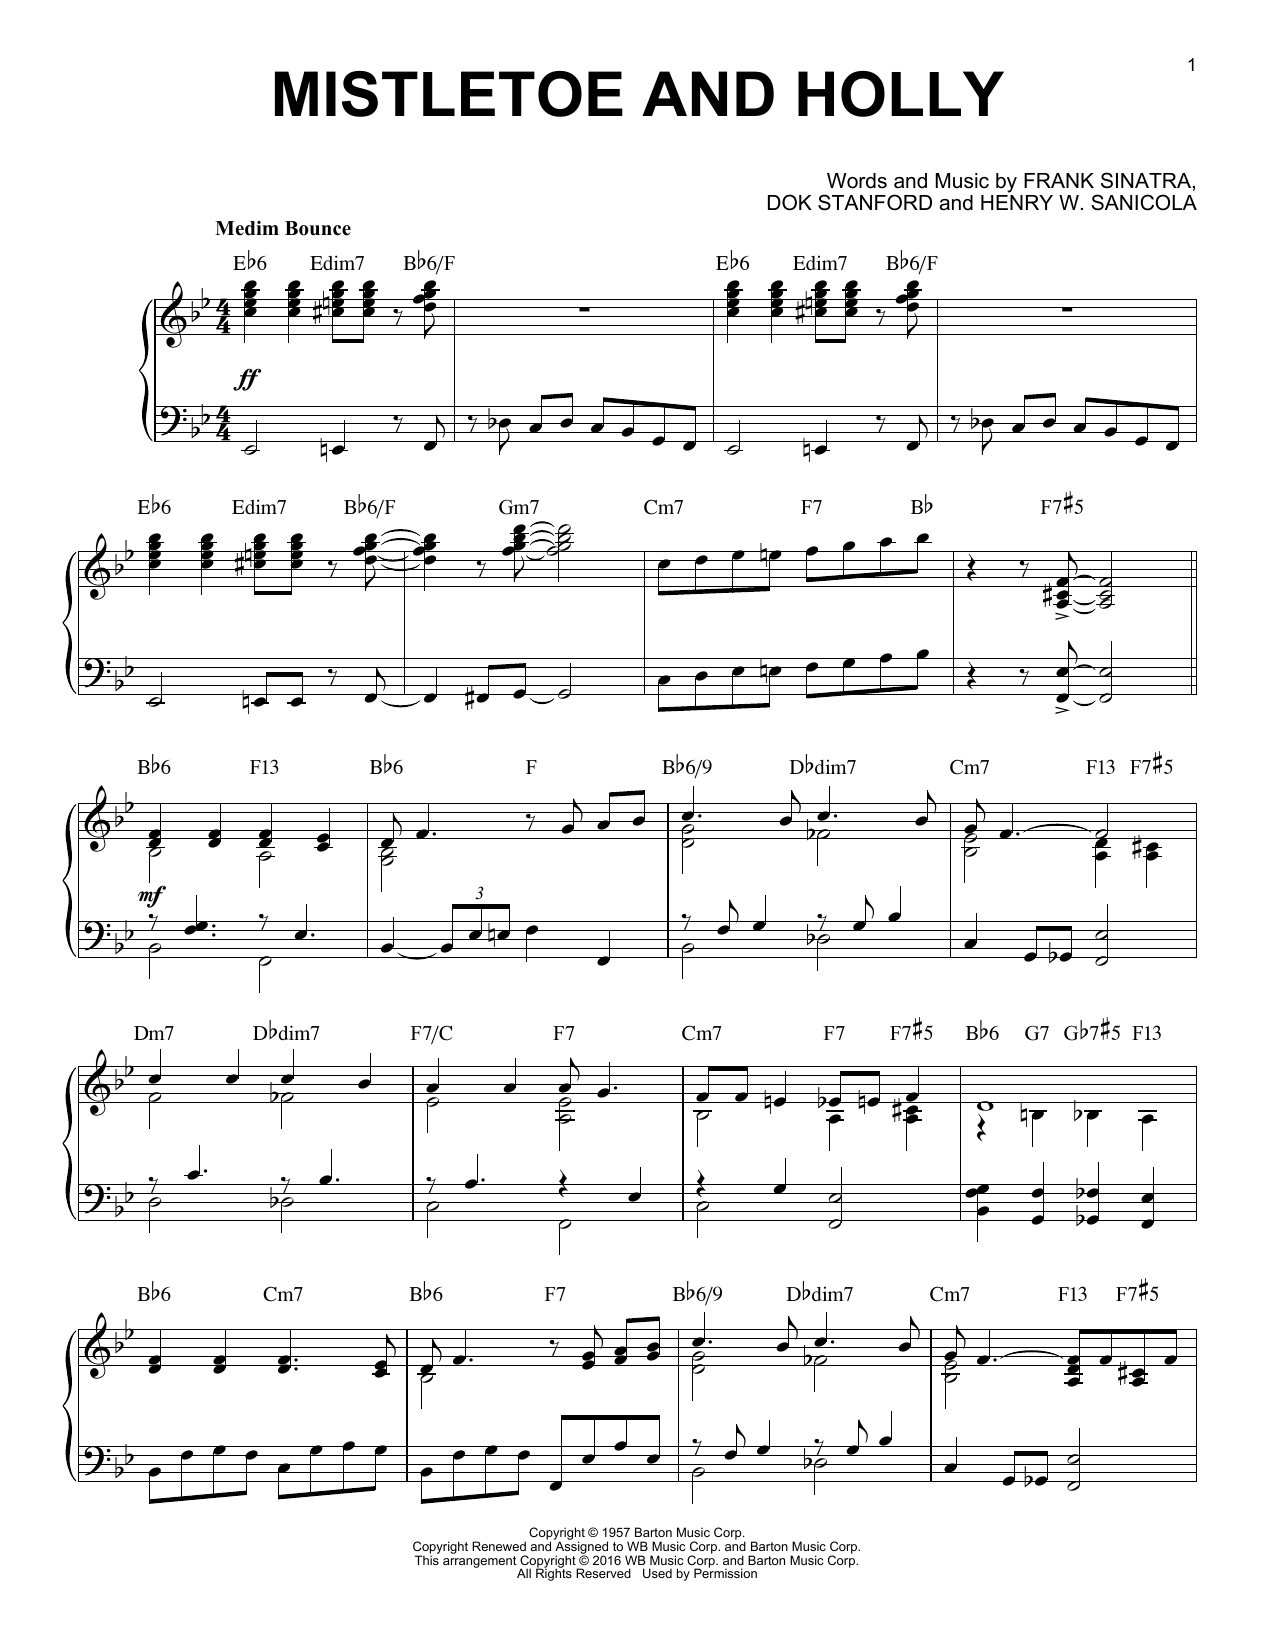 Frank Sinatra Mistletoe And Holly [Jazz version] (arr. Brent Edstrom) sheet music notes and chords. Download Printable PDF.